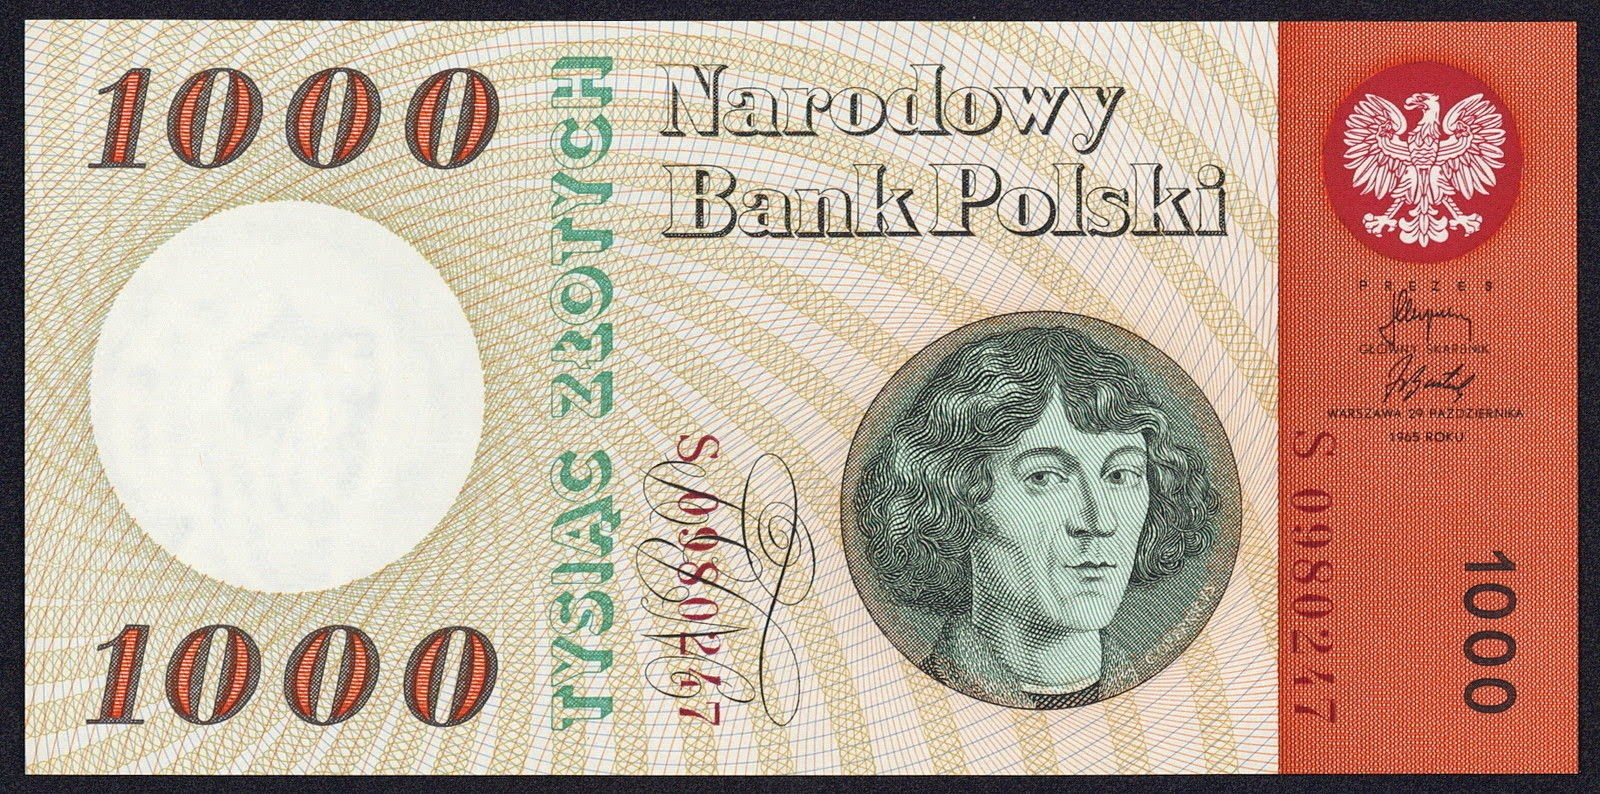 Poland Banknotes 1000 Zloty banknote 1965 Nicolaus Copernicus